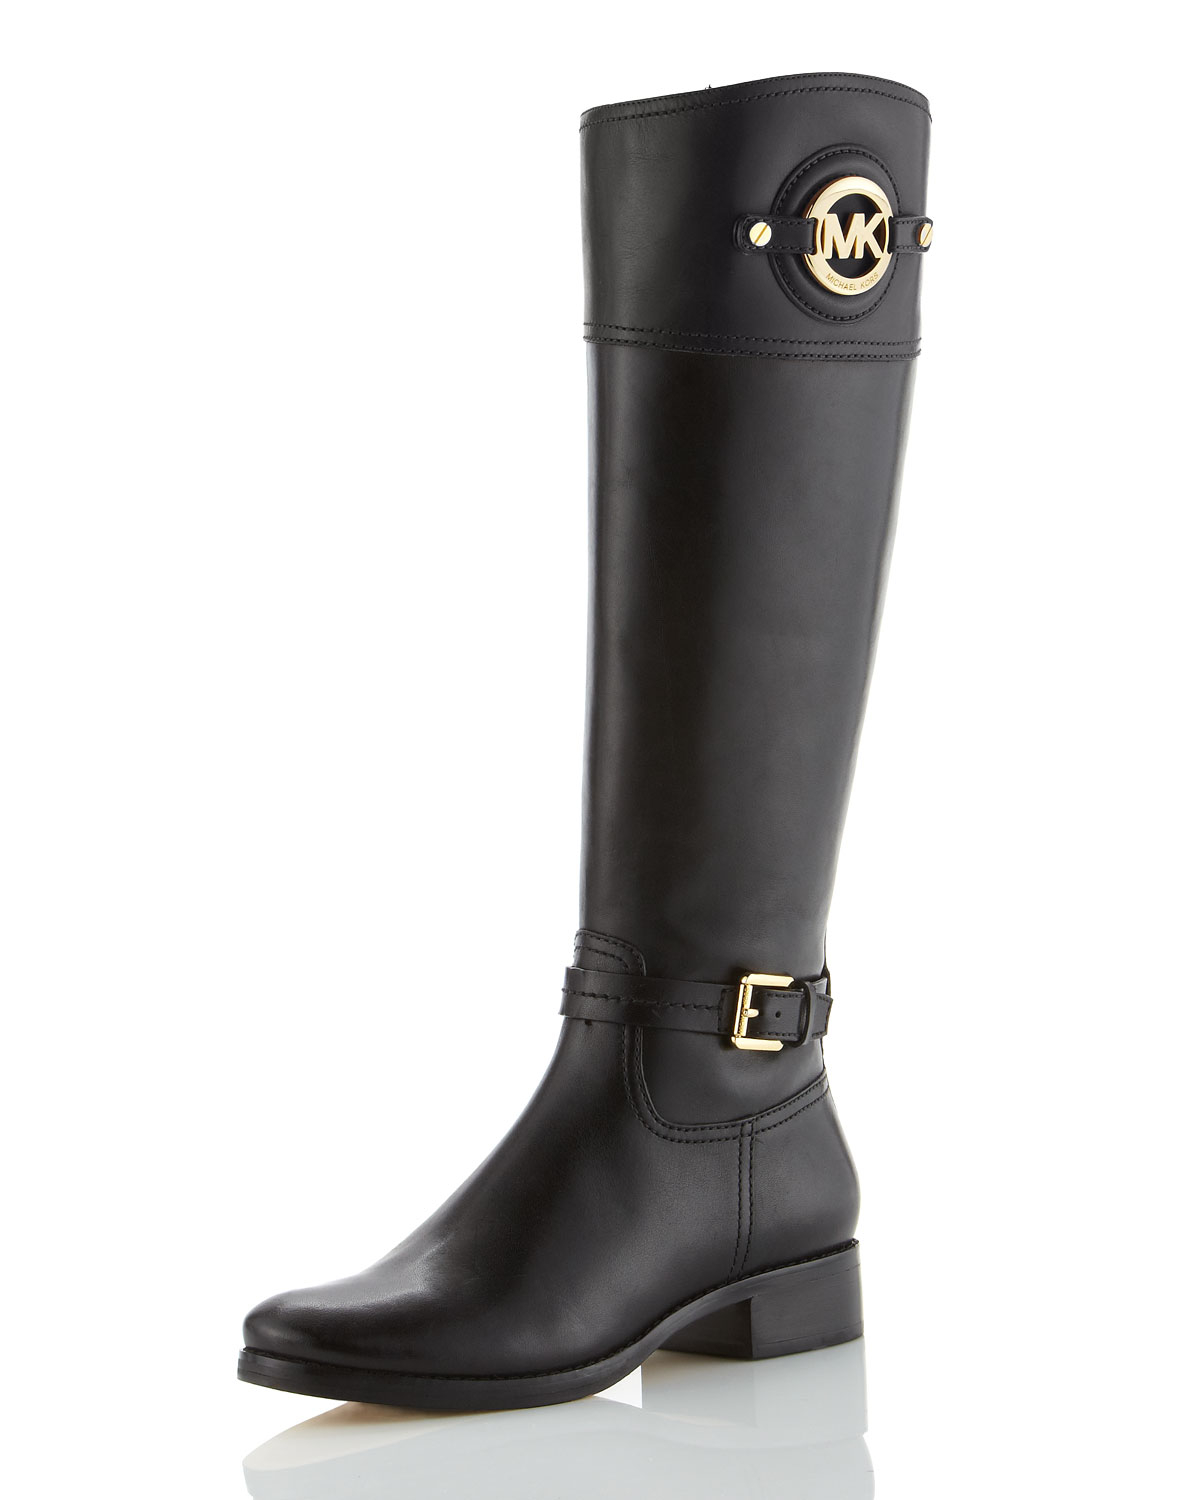 Michael michael kors Stockard Leather Riding Boot in Black | Lyst